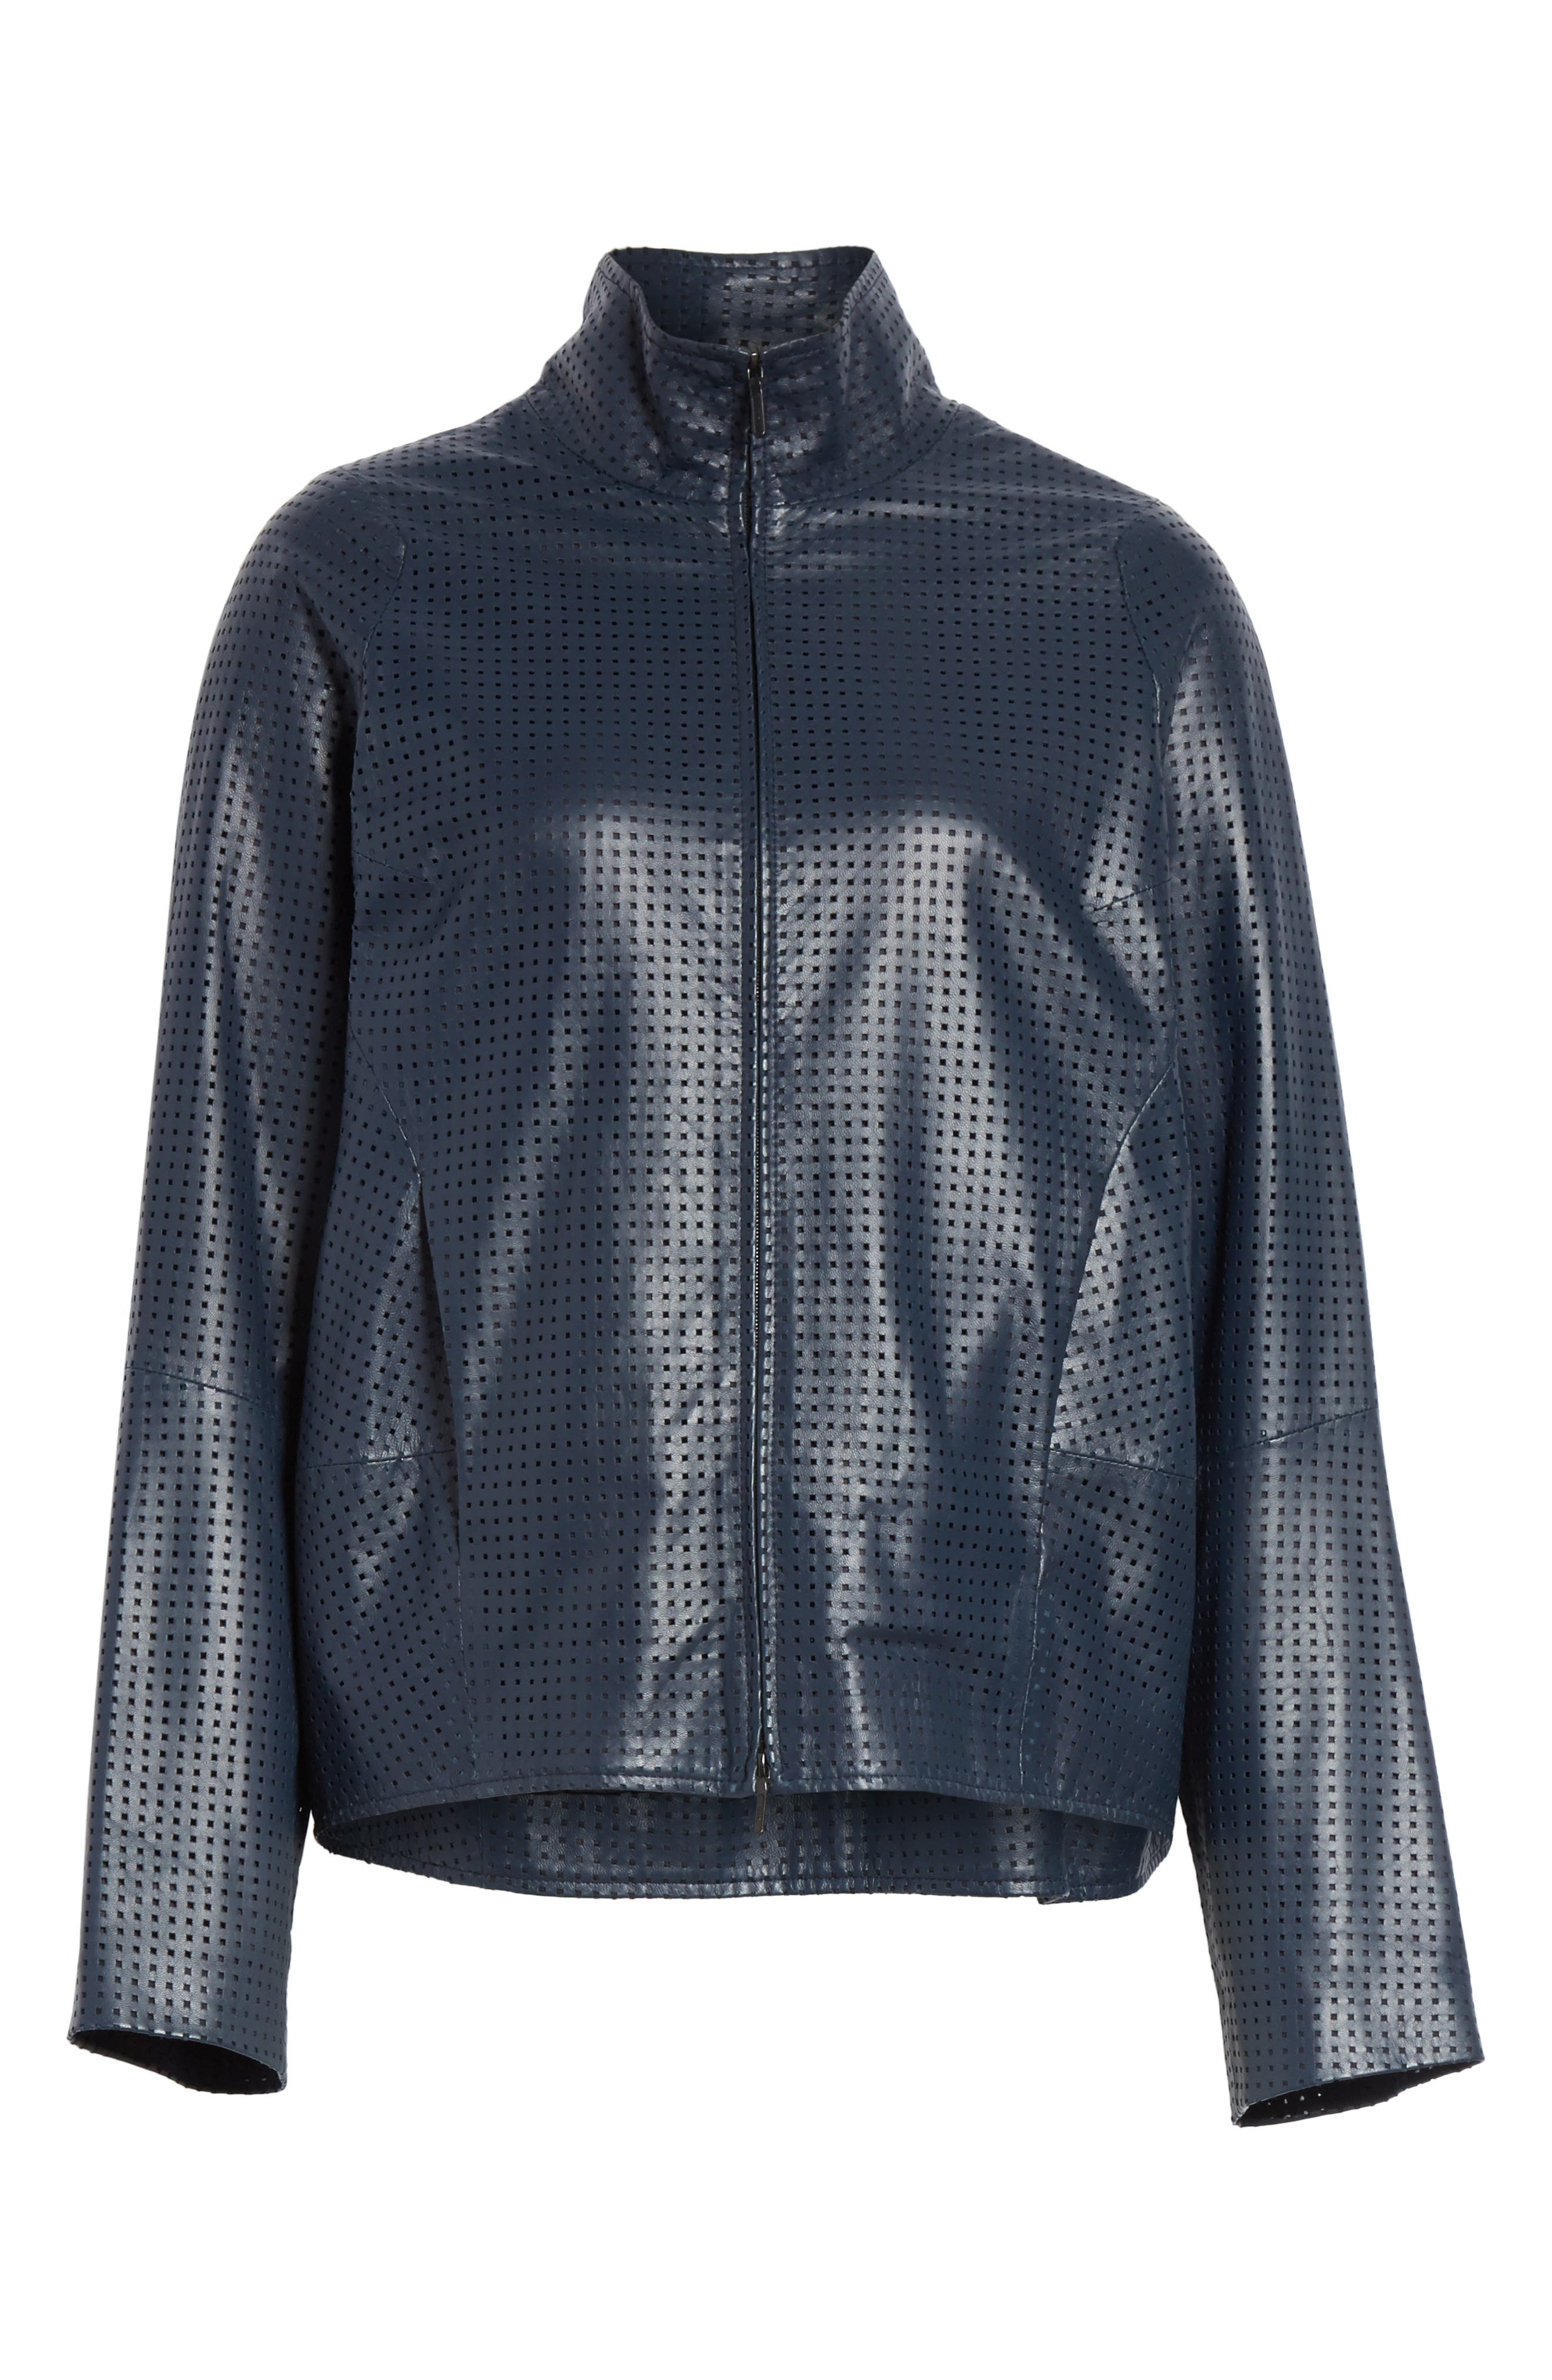 Perforated Nappa Leather Jacket,                             Alternate thumbnail 5, color,                             400